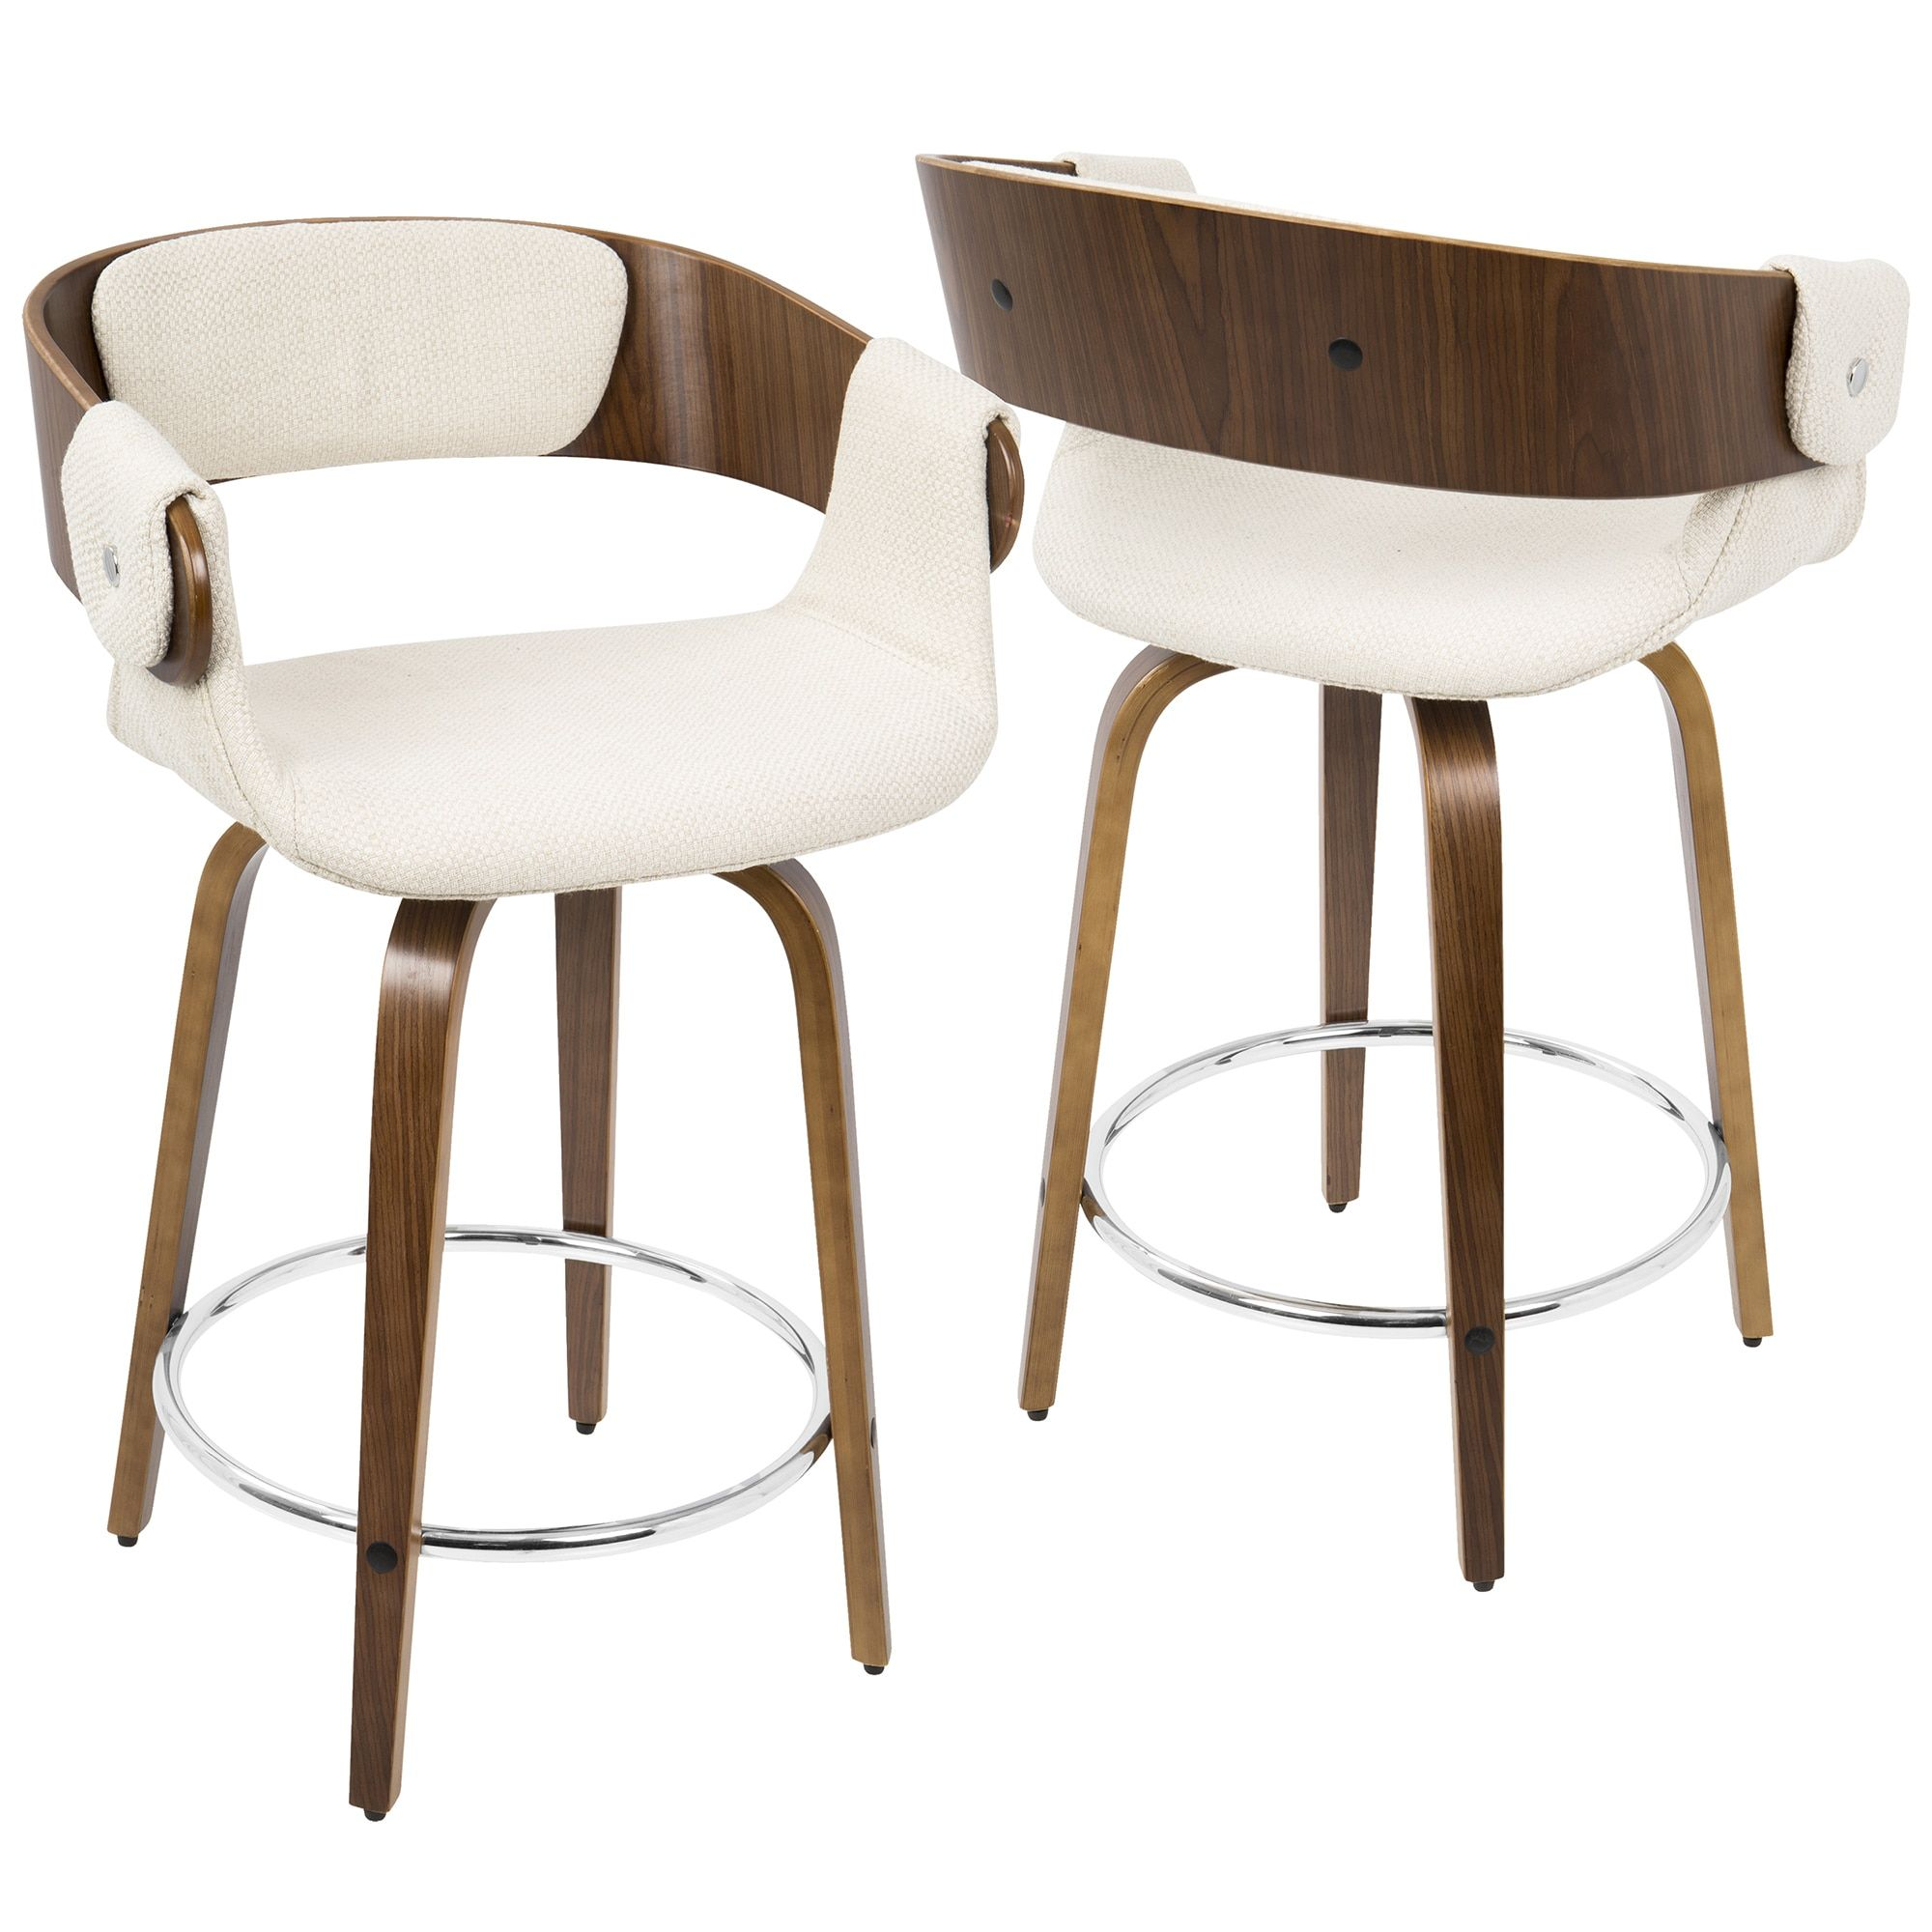 Comfortable Bar Stools Seat Everyone For Breakfast With These Comfortable Mid